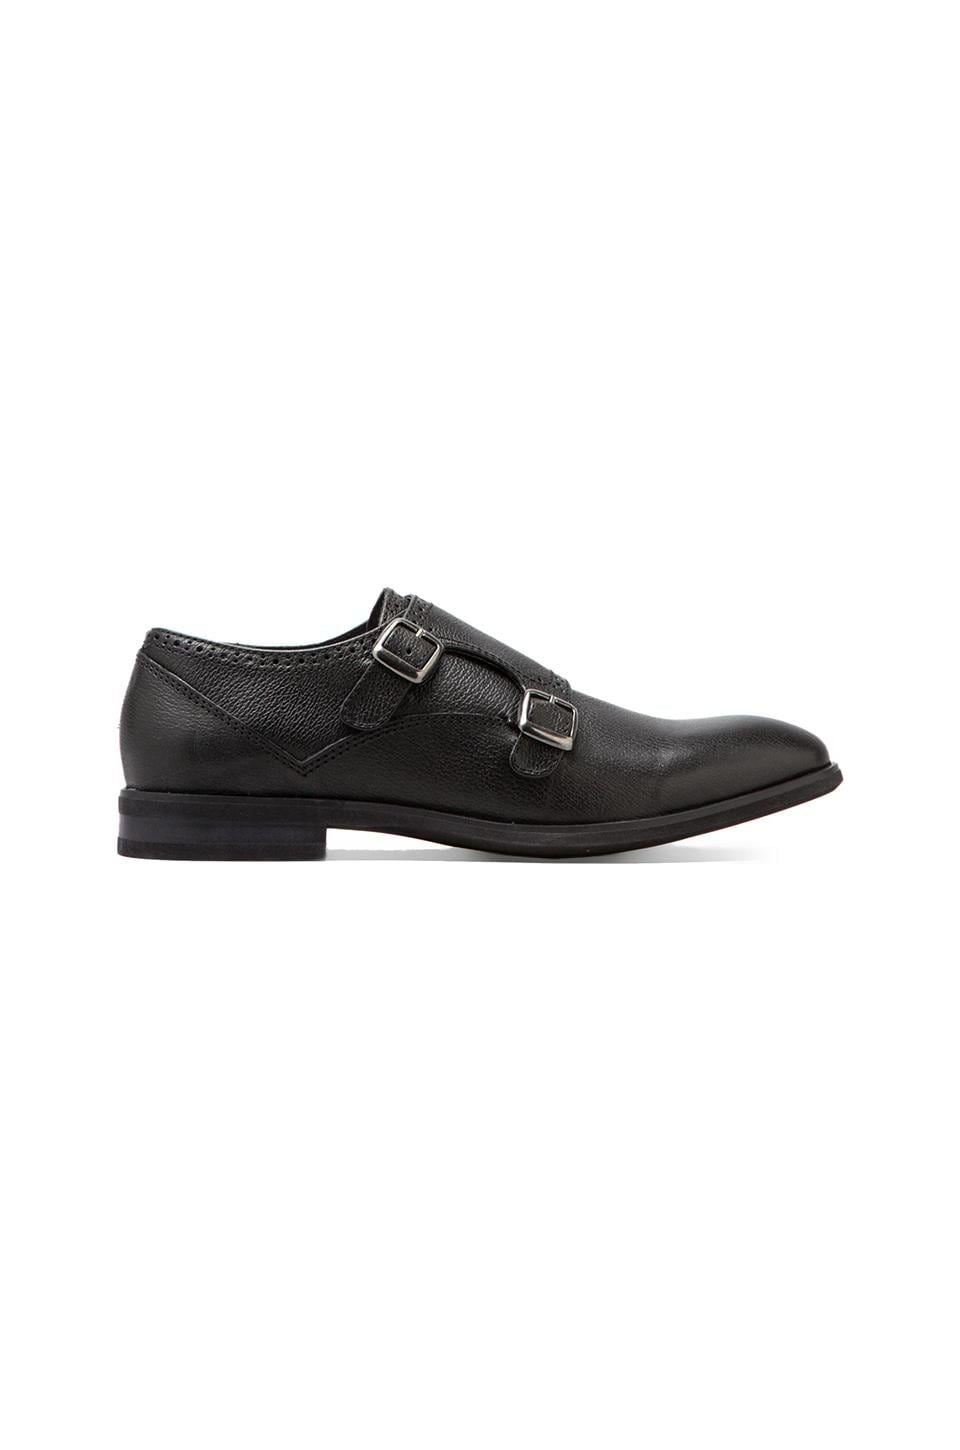 J.D. FISK Marc Monk Strap in Black